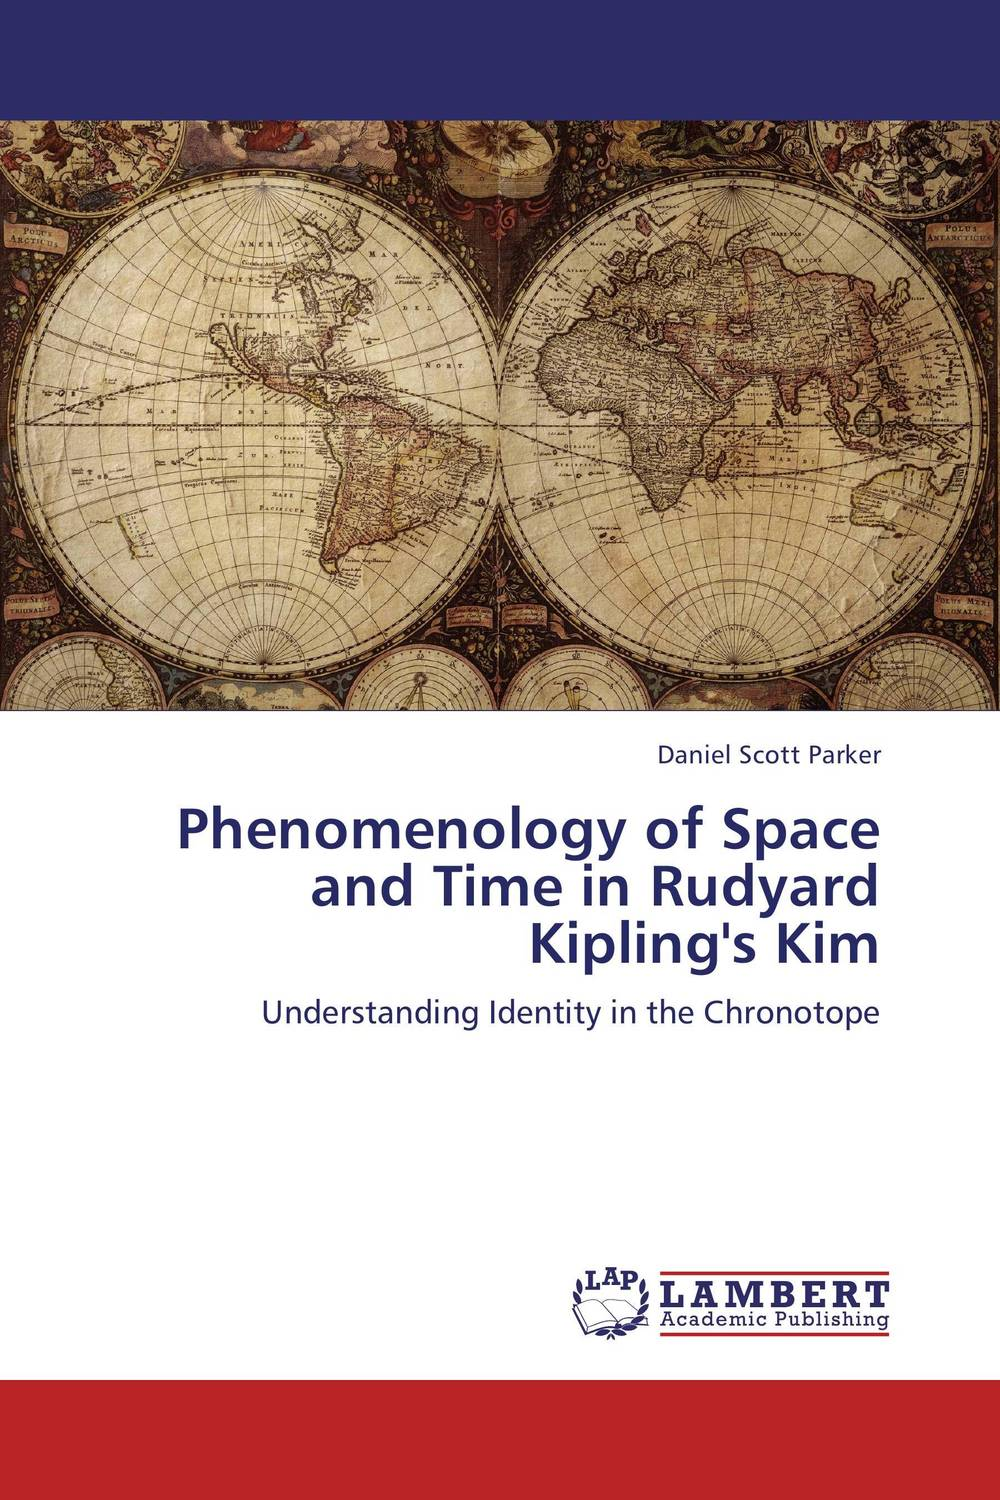 Phenomenology of Space and Time in Rudyard Kipling's Kim new england textiles in the nineteenth century – profits